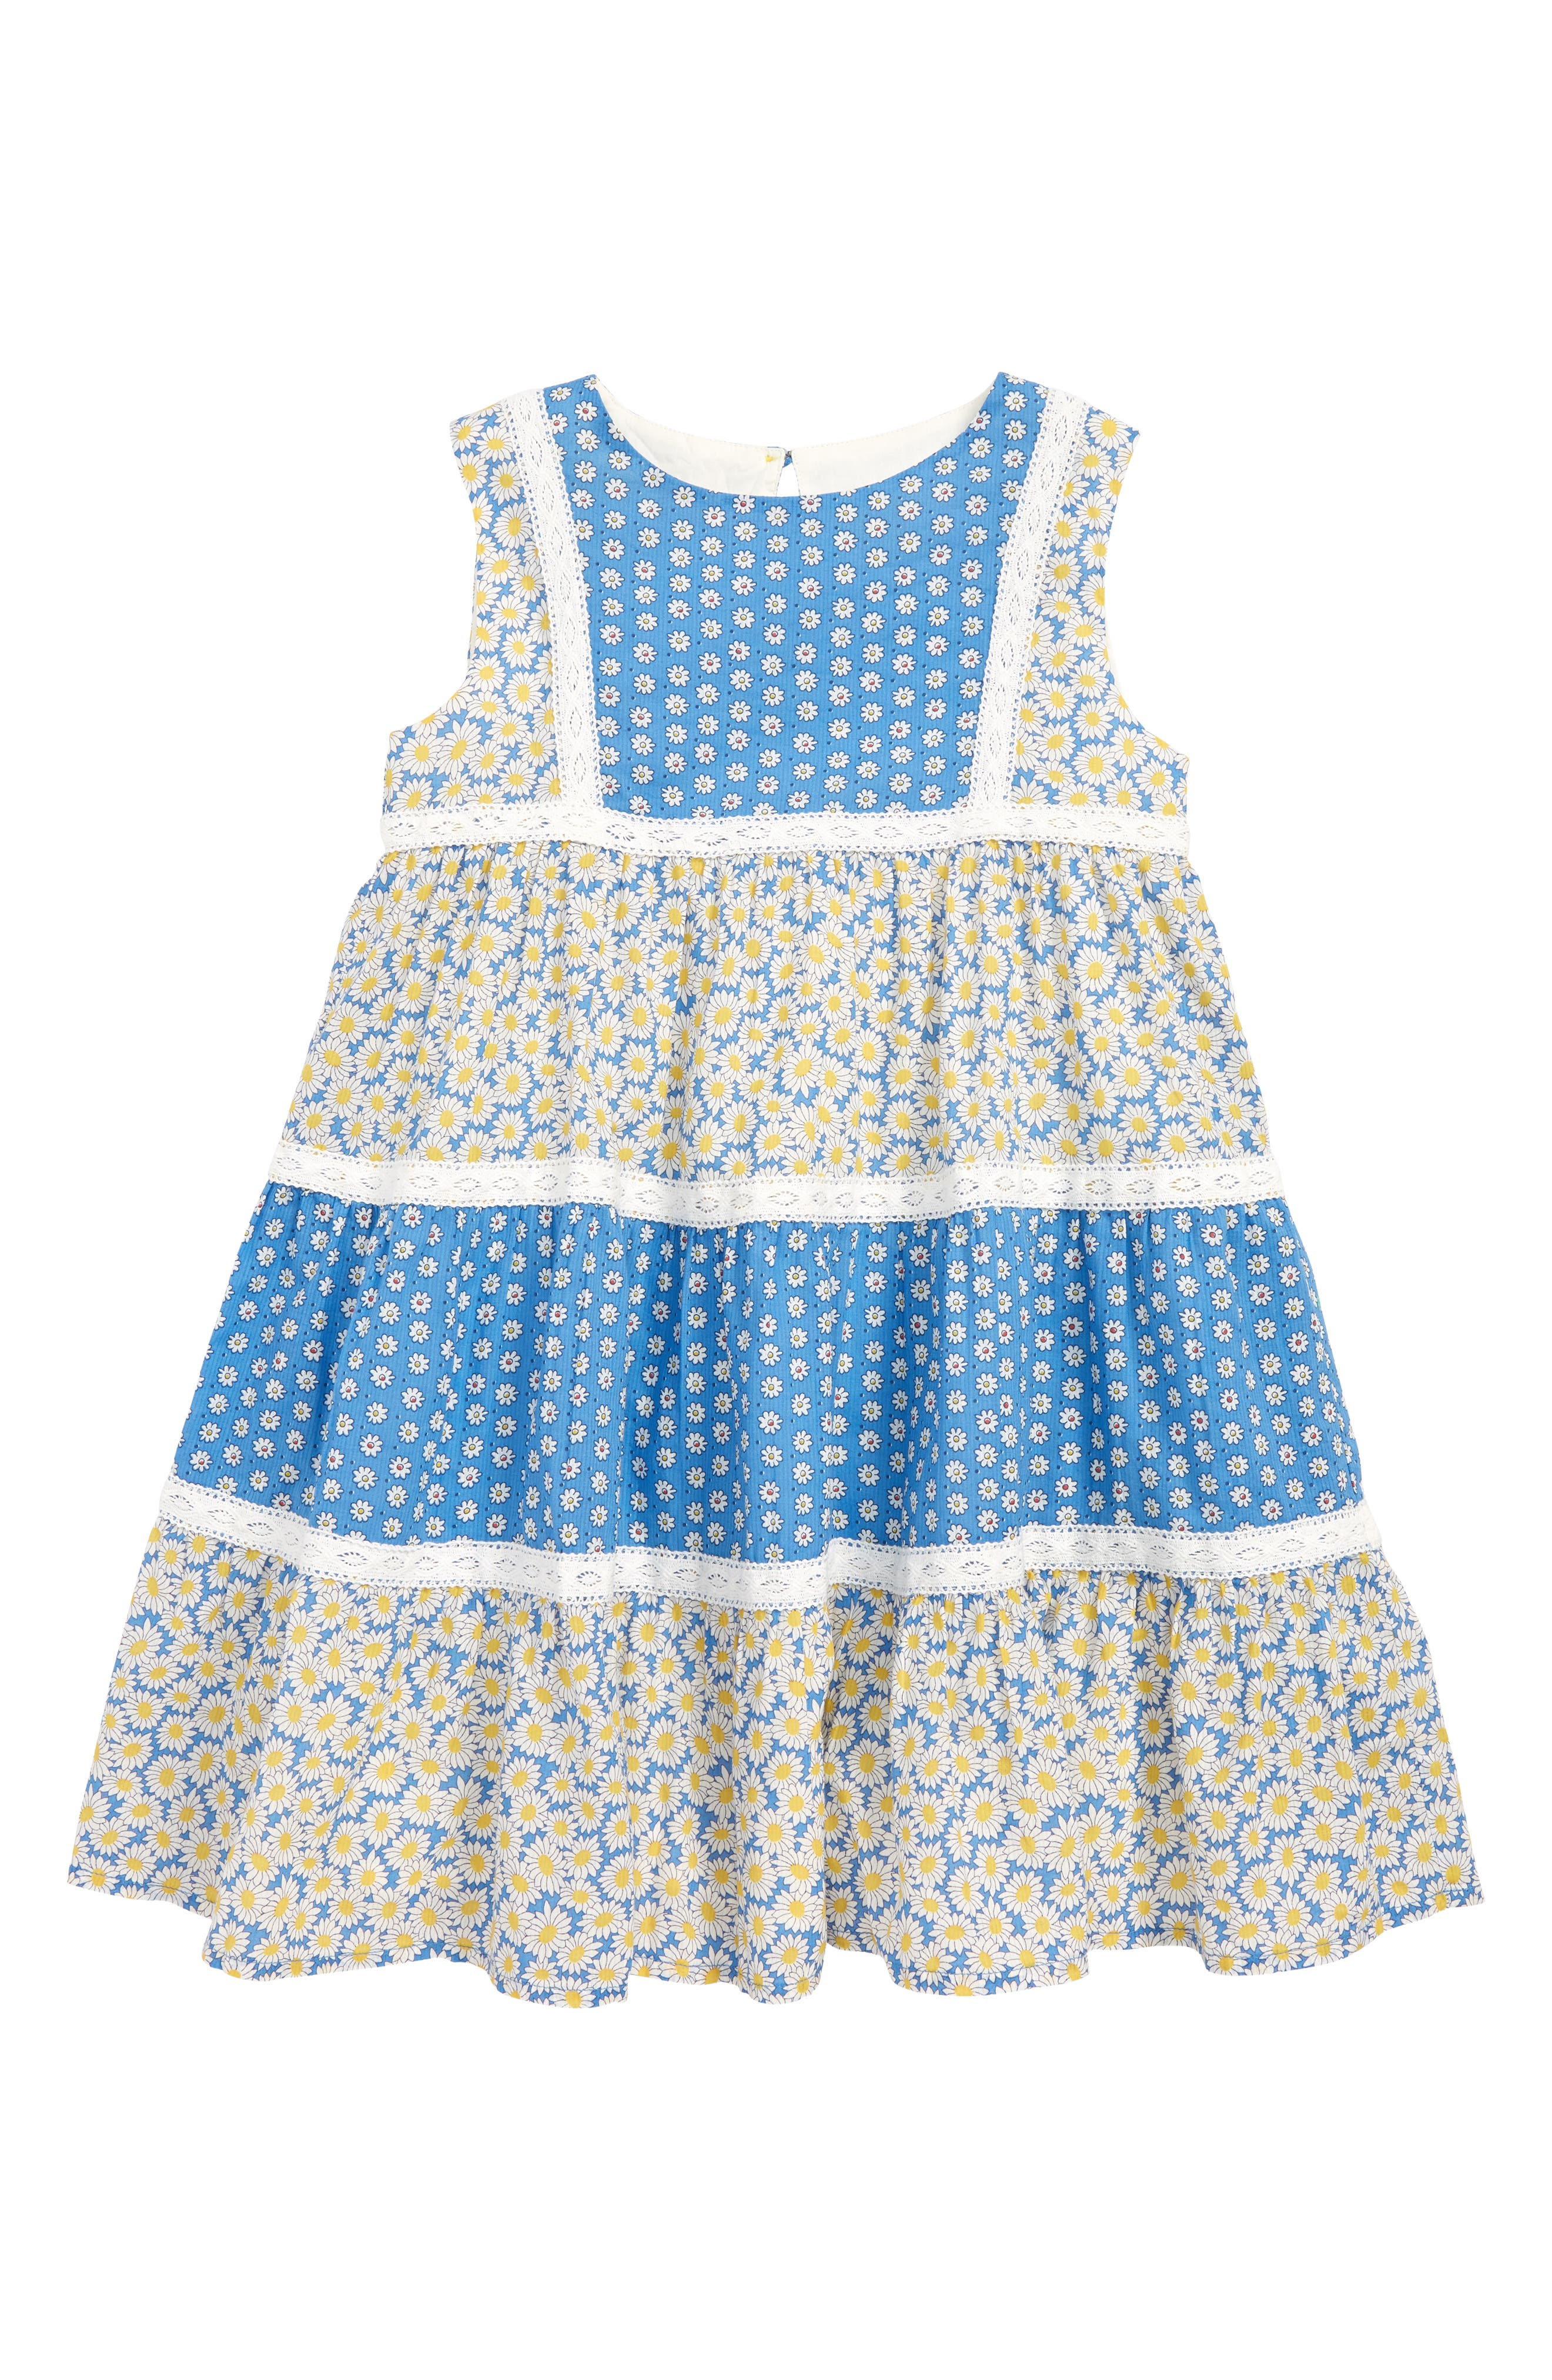 037fefd714a5 Mini Boden Kids  Clothing